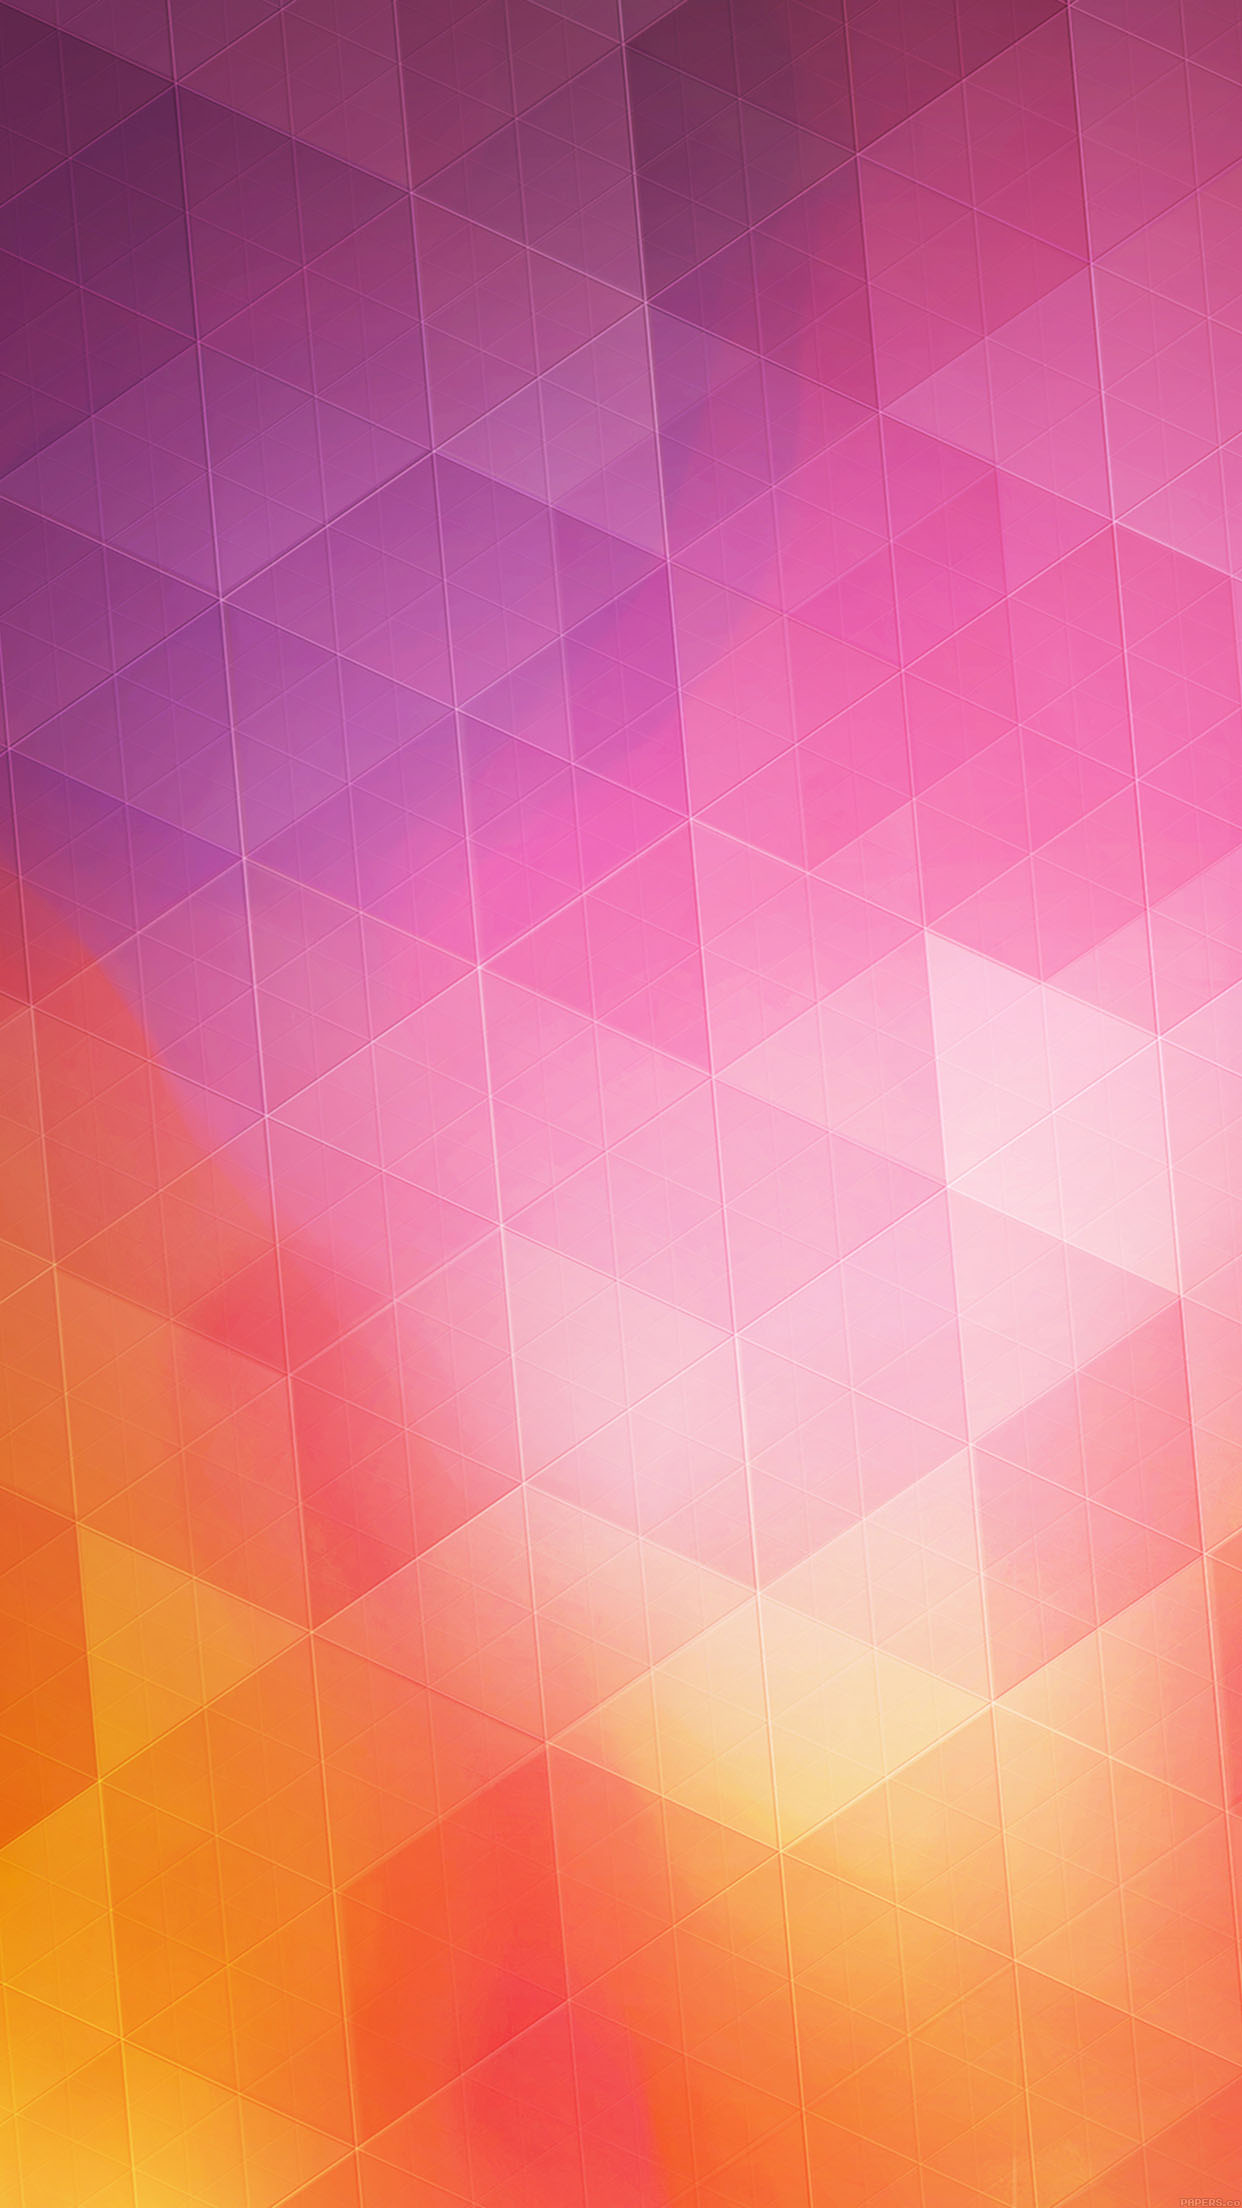 Iphone6papers Vb70 Wallpaper Android Purple Wall Pattern